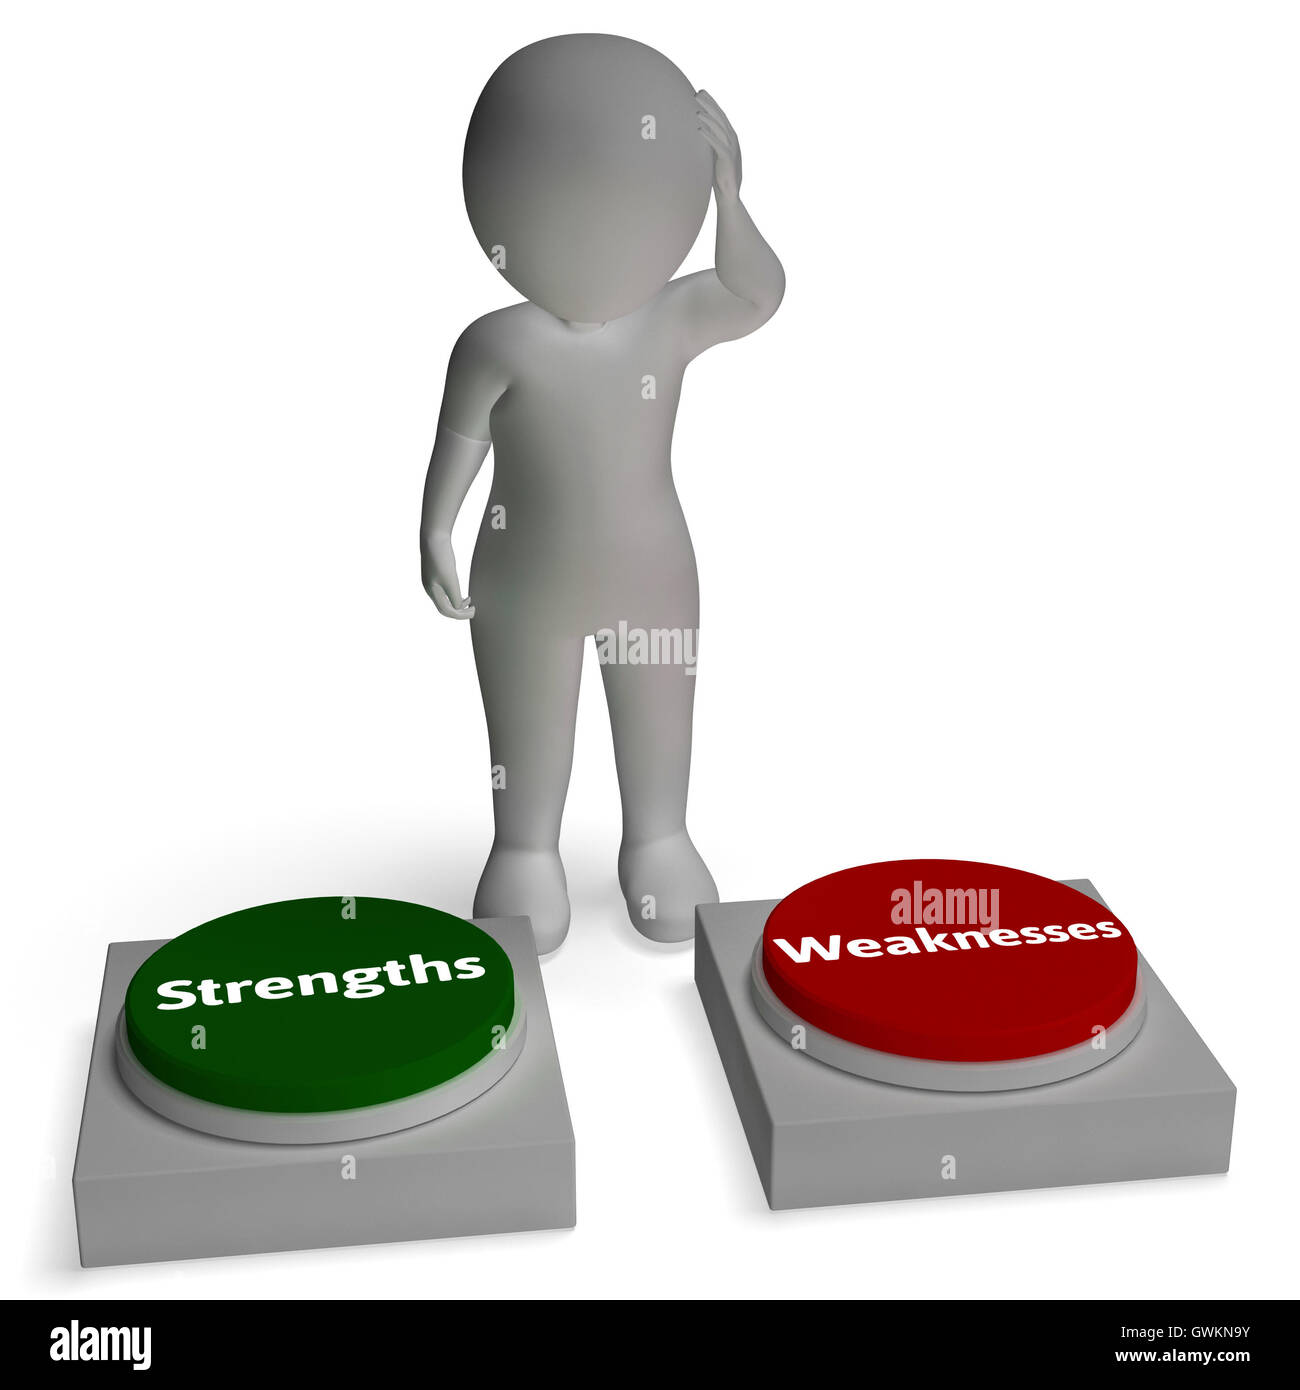 strengths weaknesses buttons shows weakness or strength stock stock photo strengths weaknesses buttons shows weakness or strength